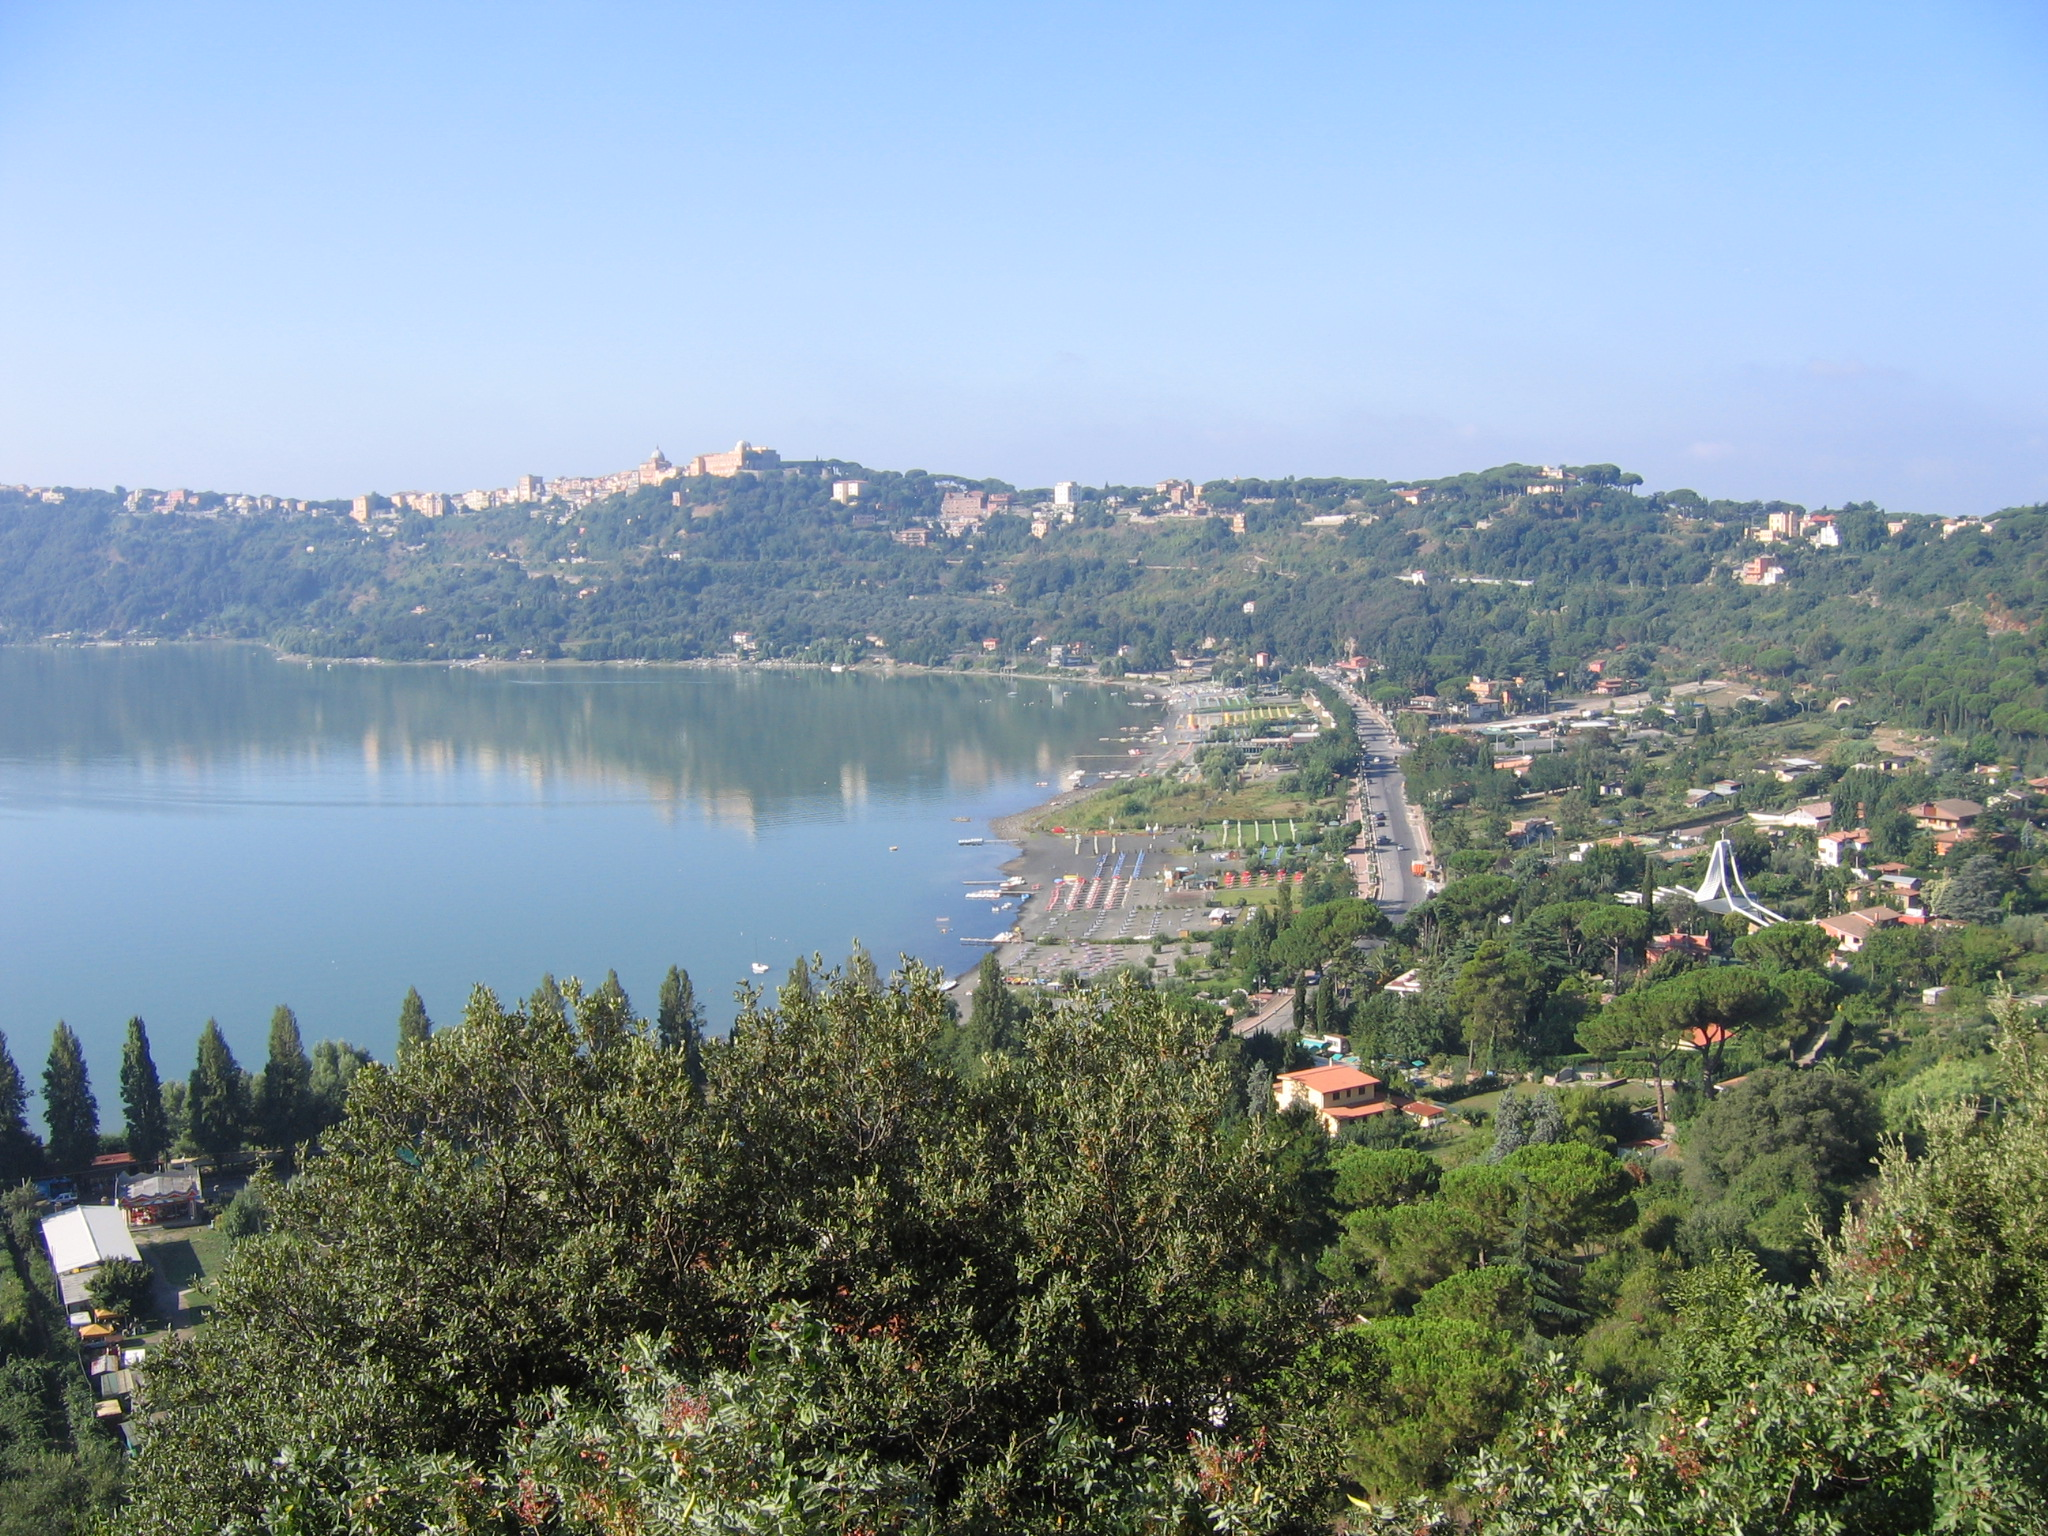 CASTEL GANDOLFO   This small village is know for 2 major things - the Pope's summer residence and the Lake Albano. At the lake you find plenty of bars and restaurants.